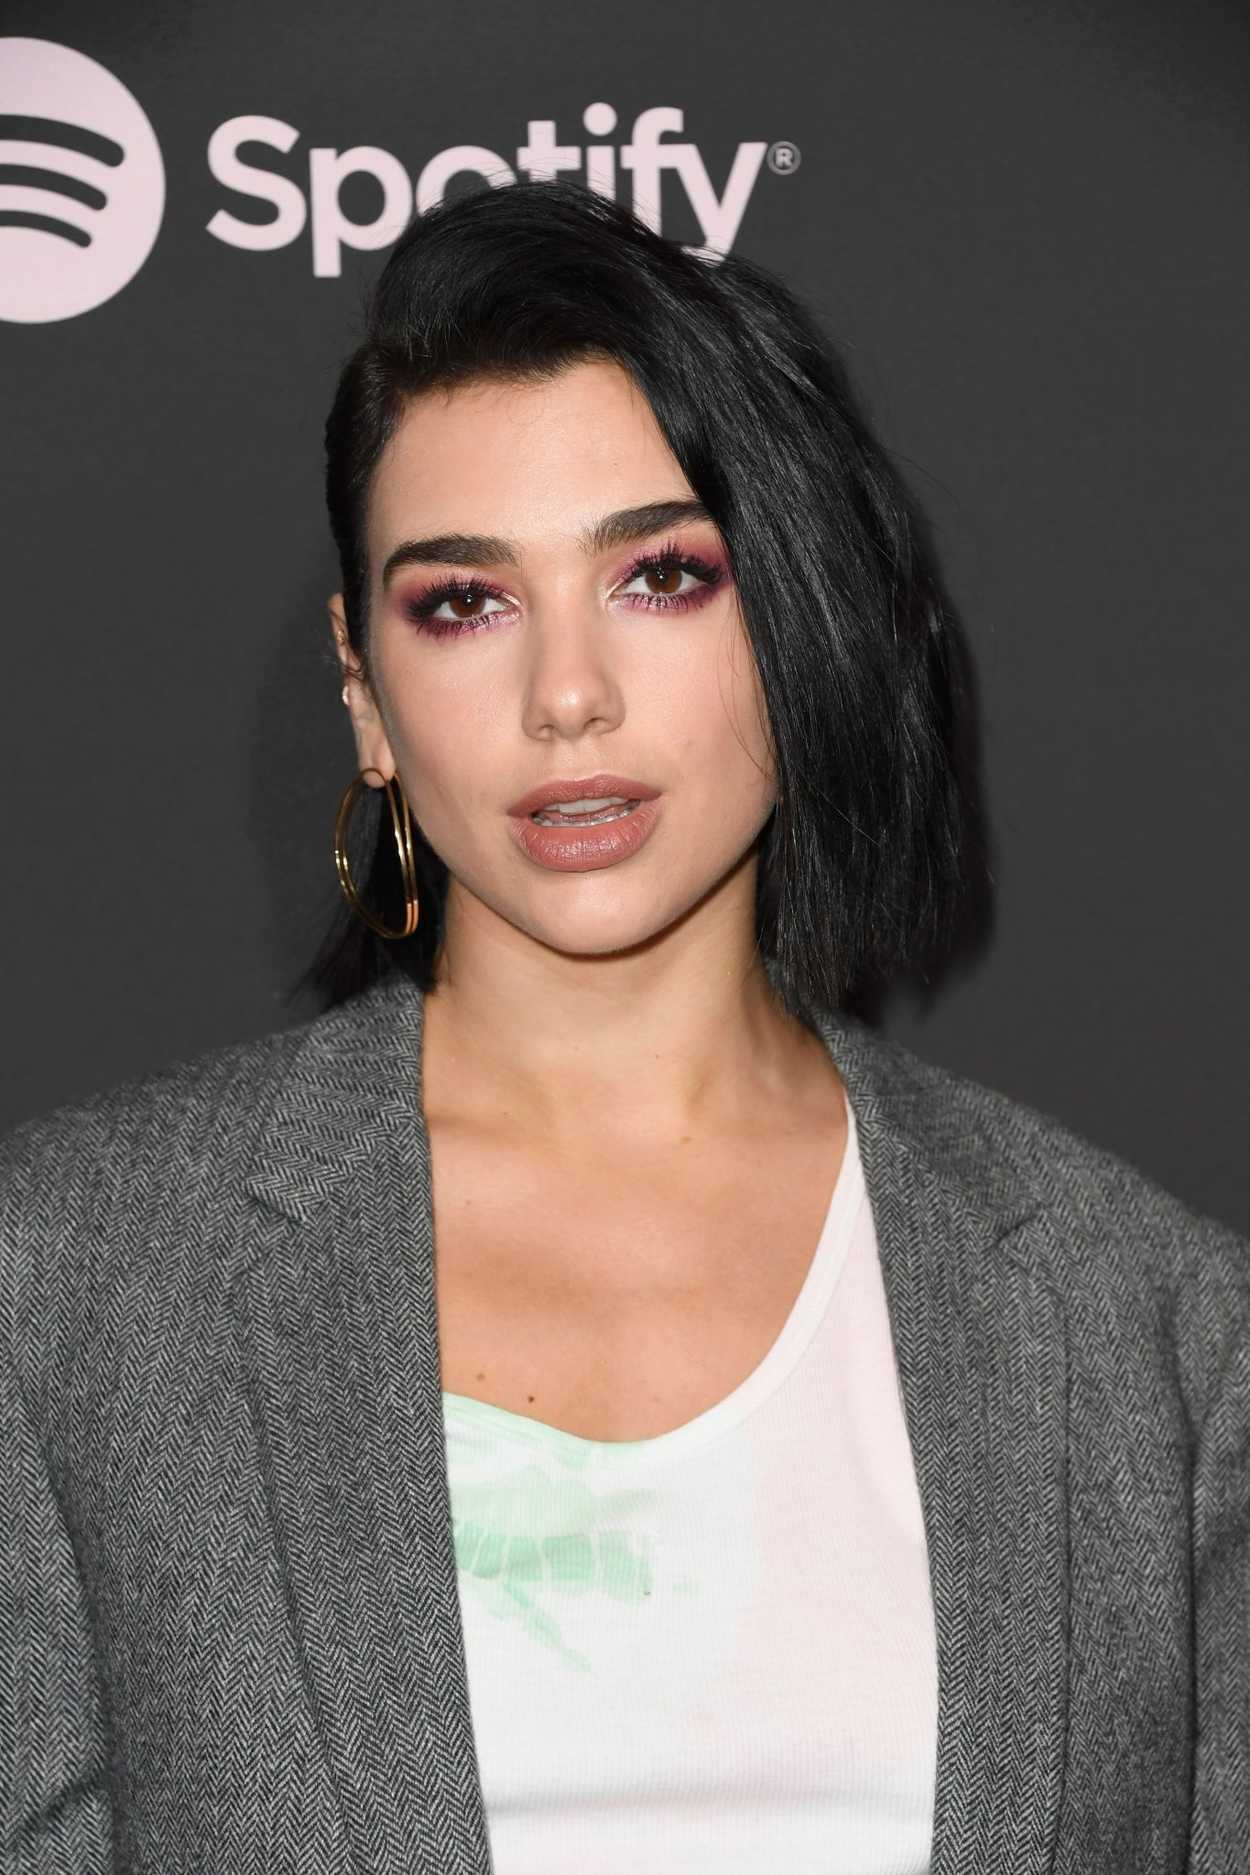 dua lipa attends spotify best new artist 2019 event in los